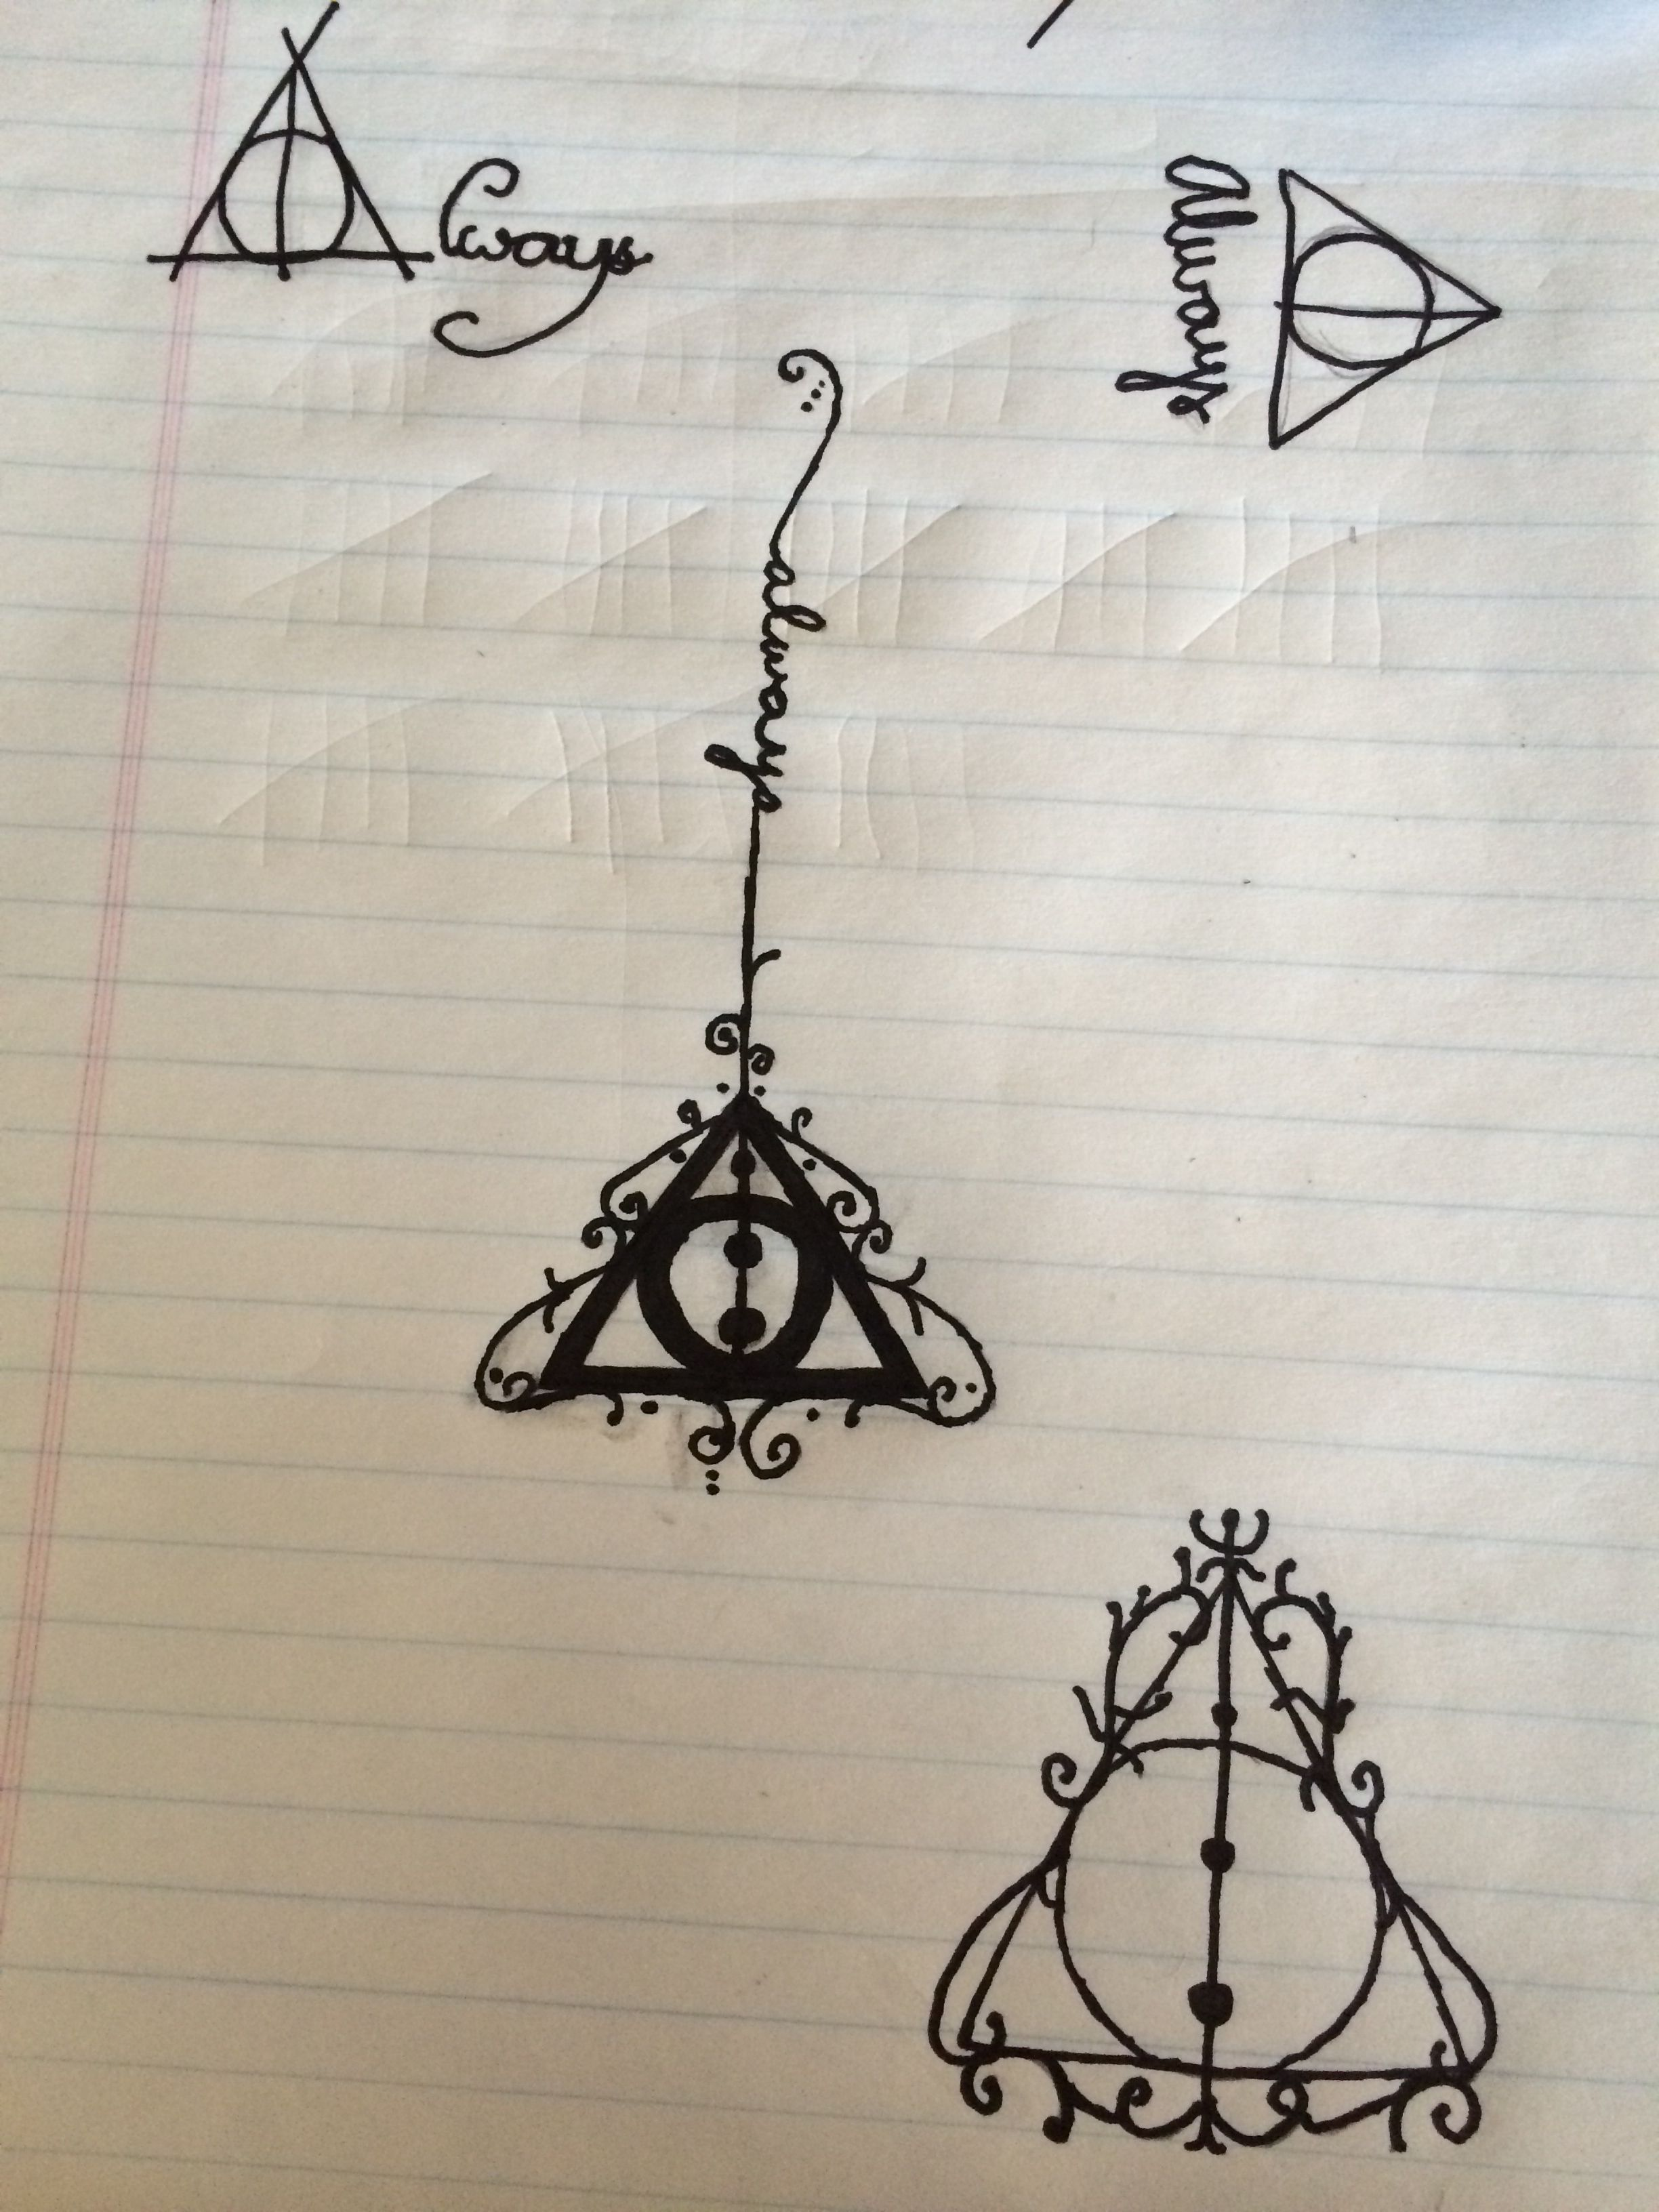 Deathly Hallows! Different styles to make it more beautiful!